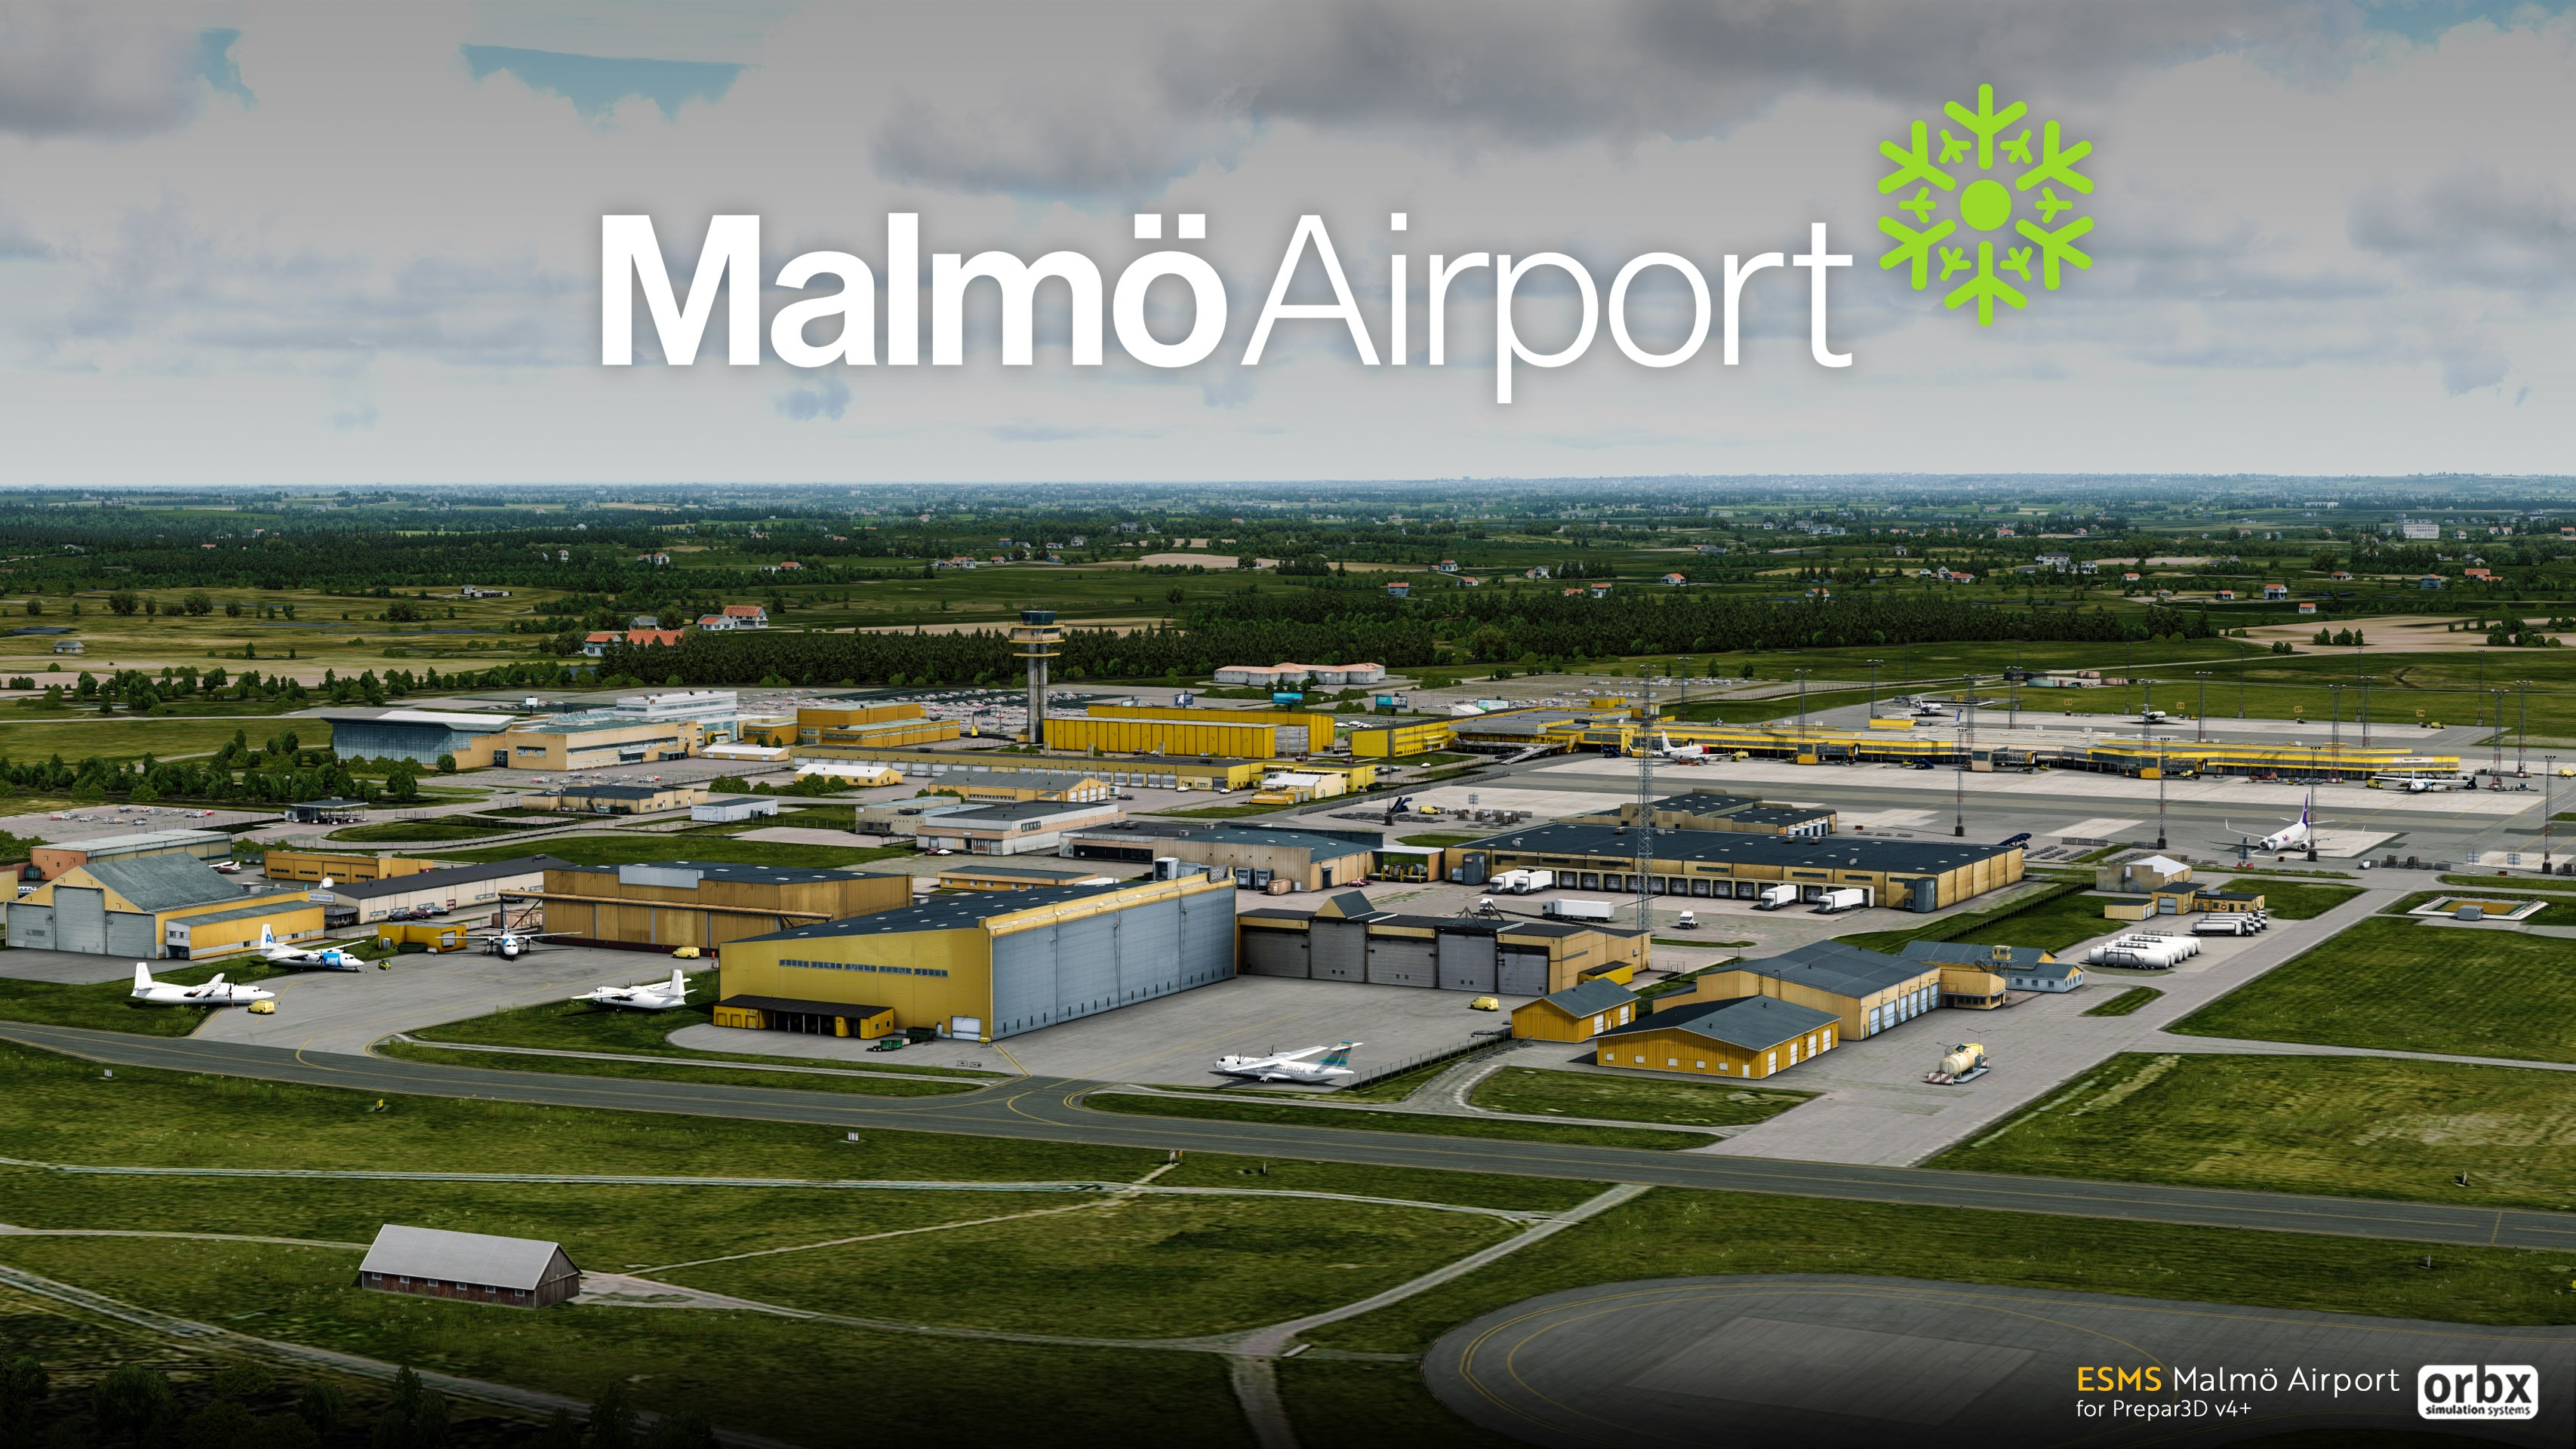 MalmoFeature Orbx Announces Malmö Airport for P3D